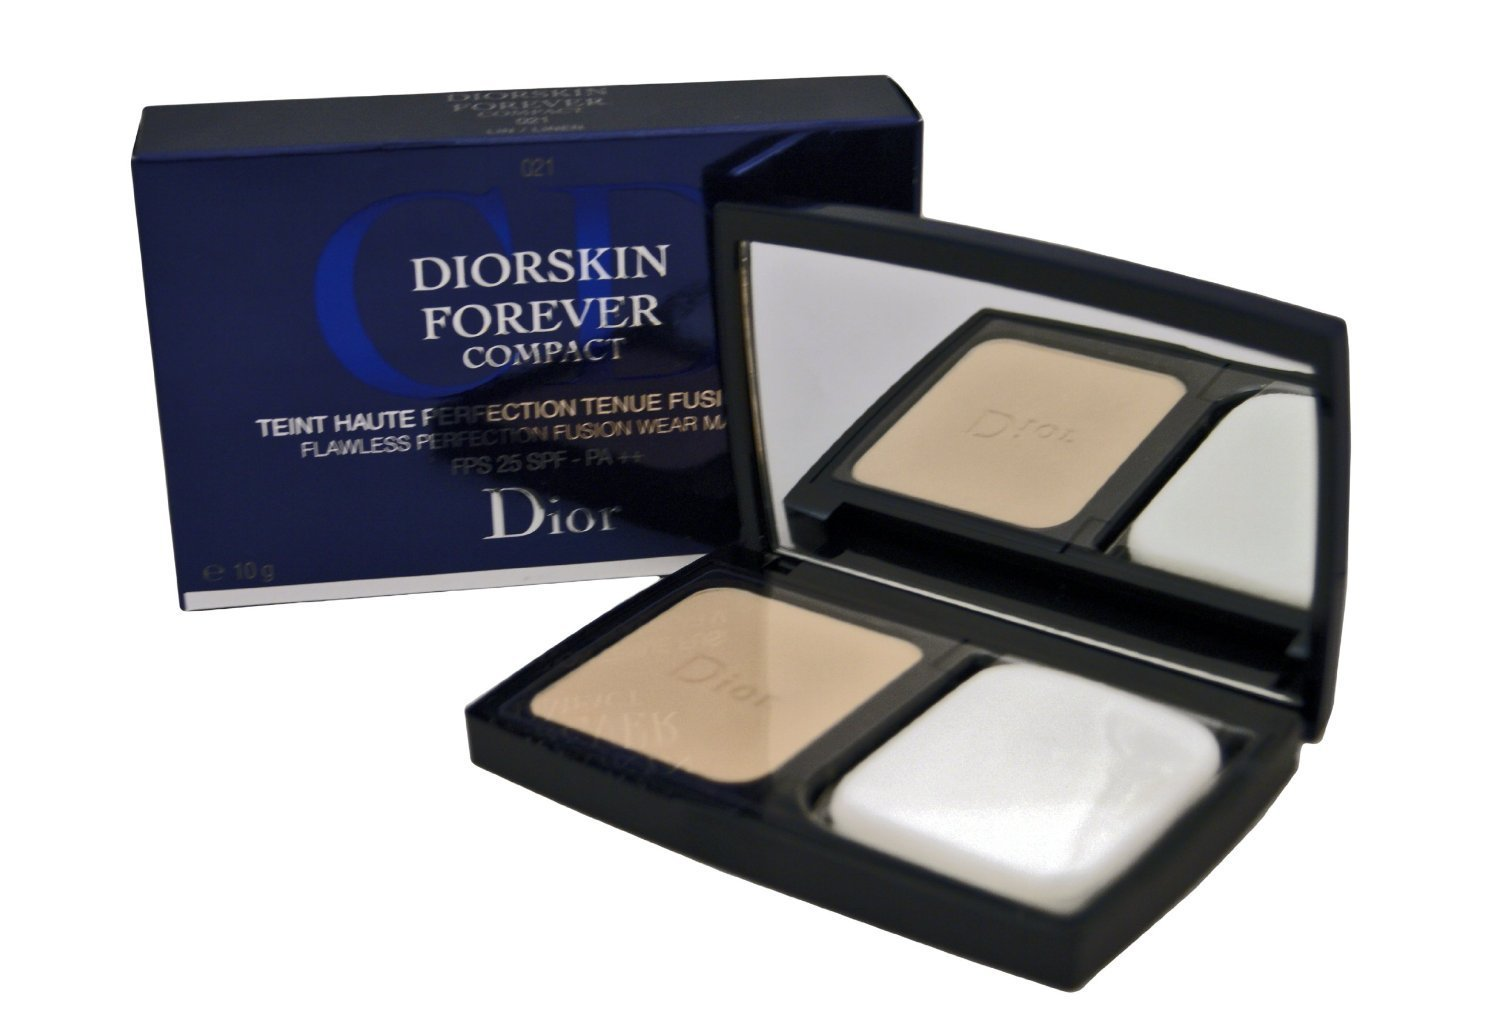 Christian Dior Diorskin Forever Compact SPF 25